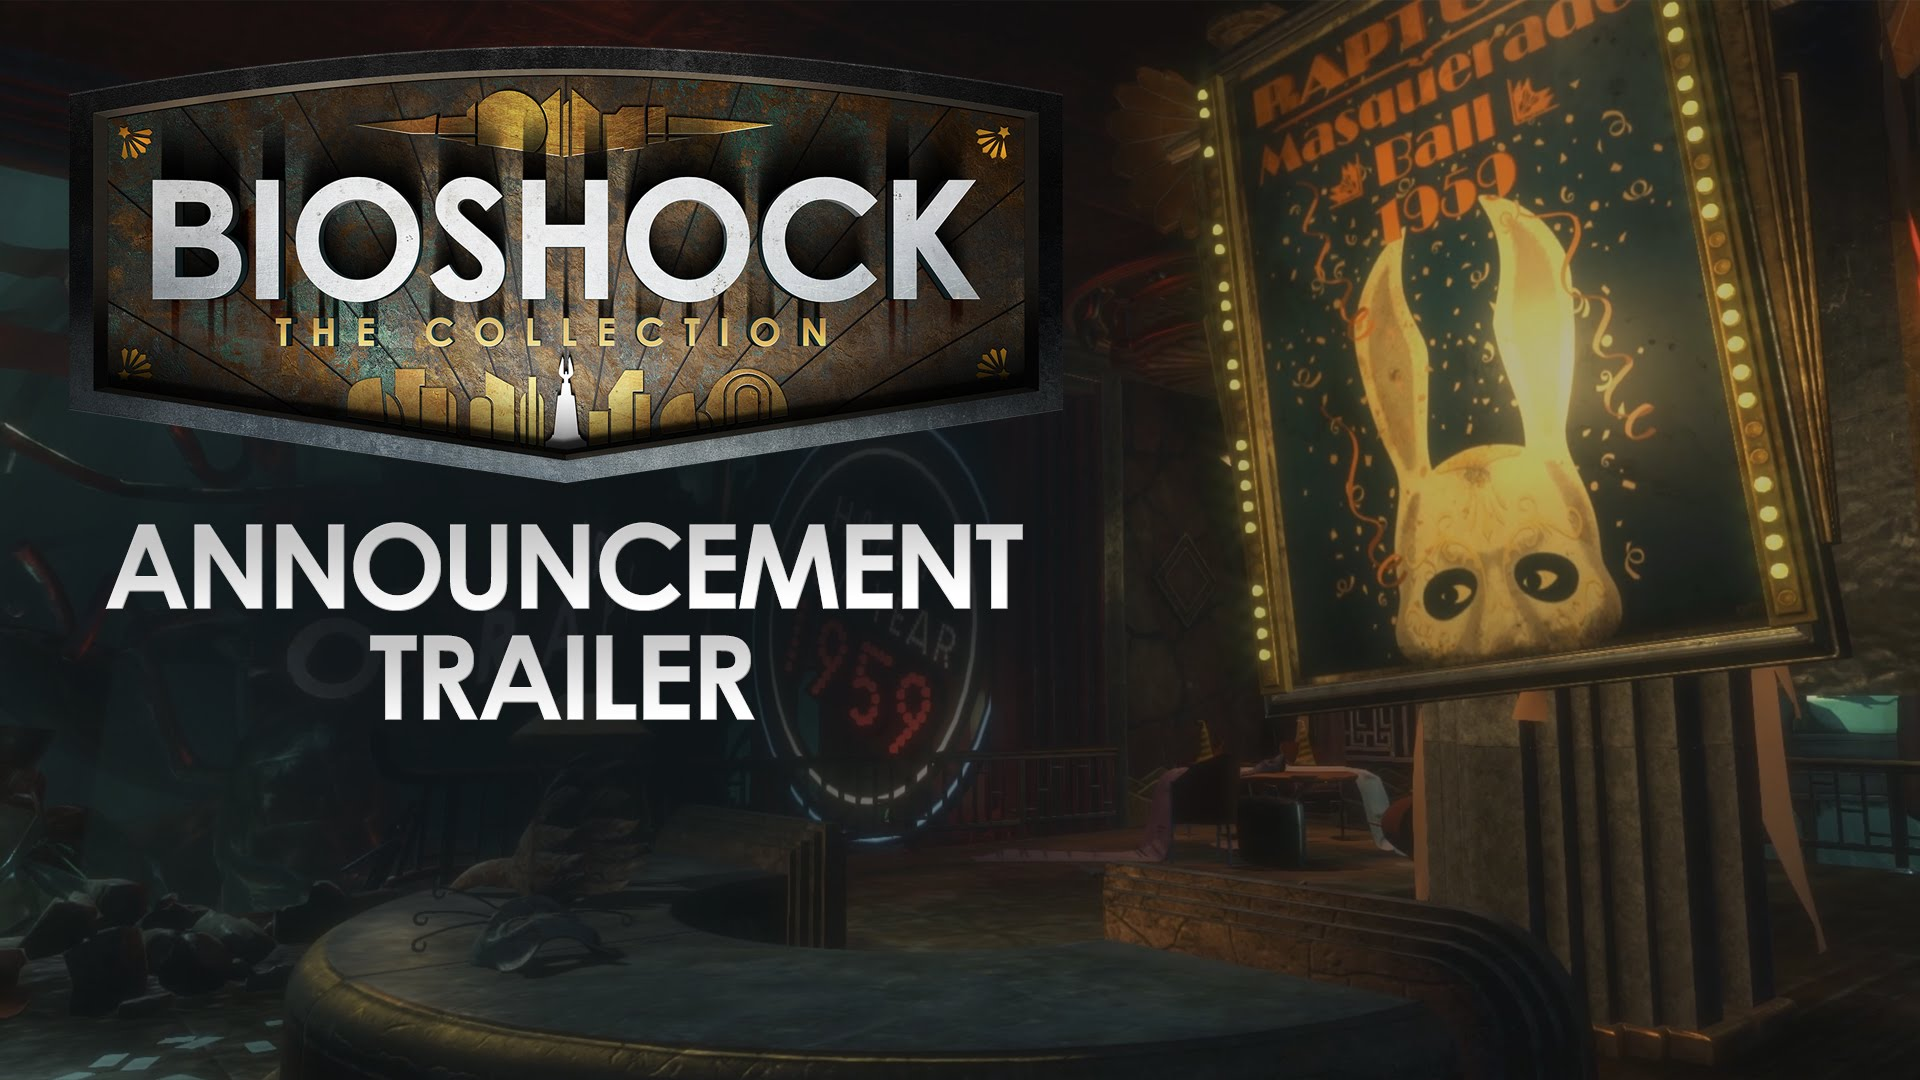 BioShock: The Collection – Announcement Trailer